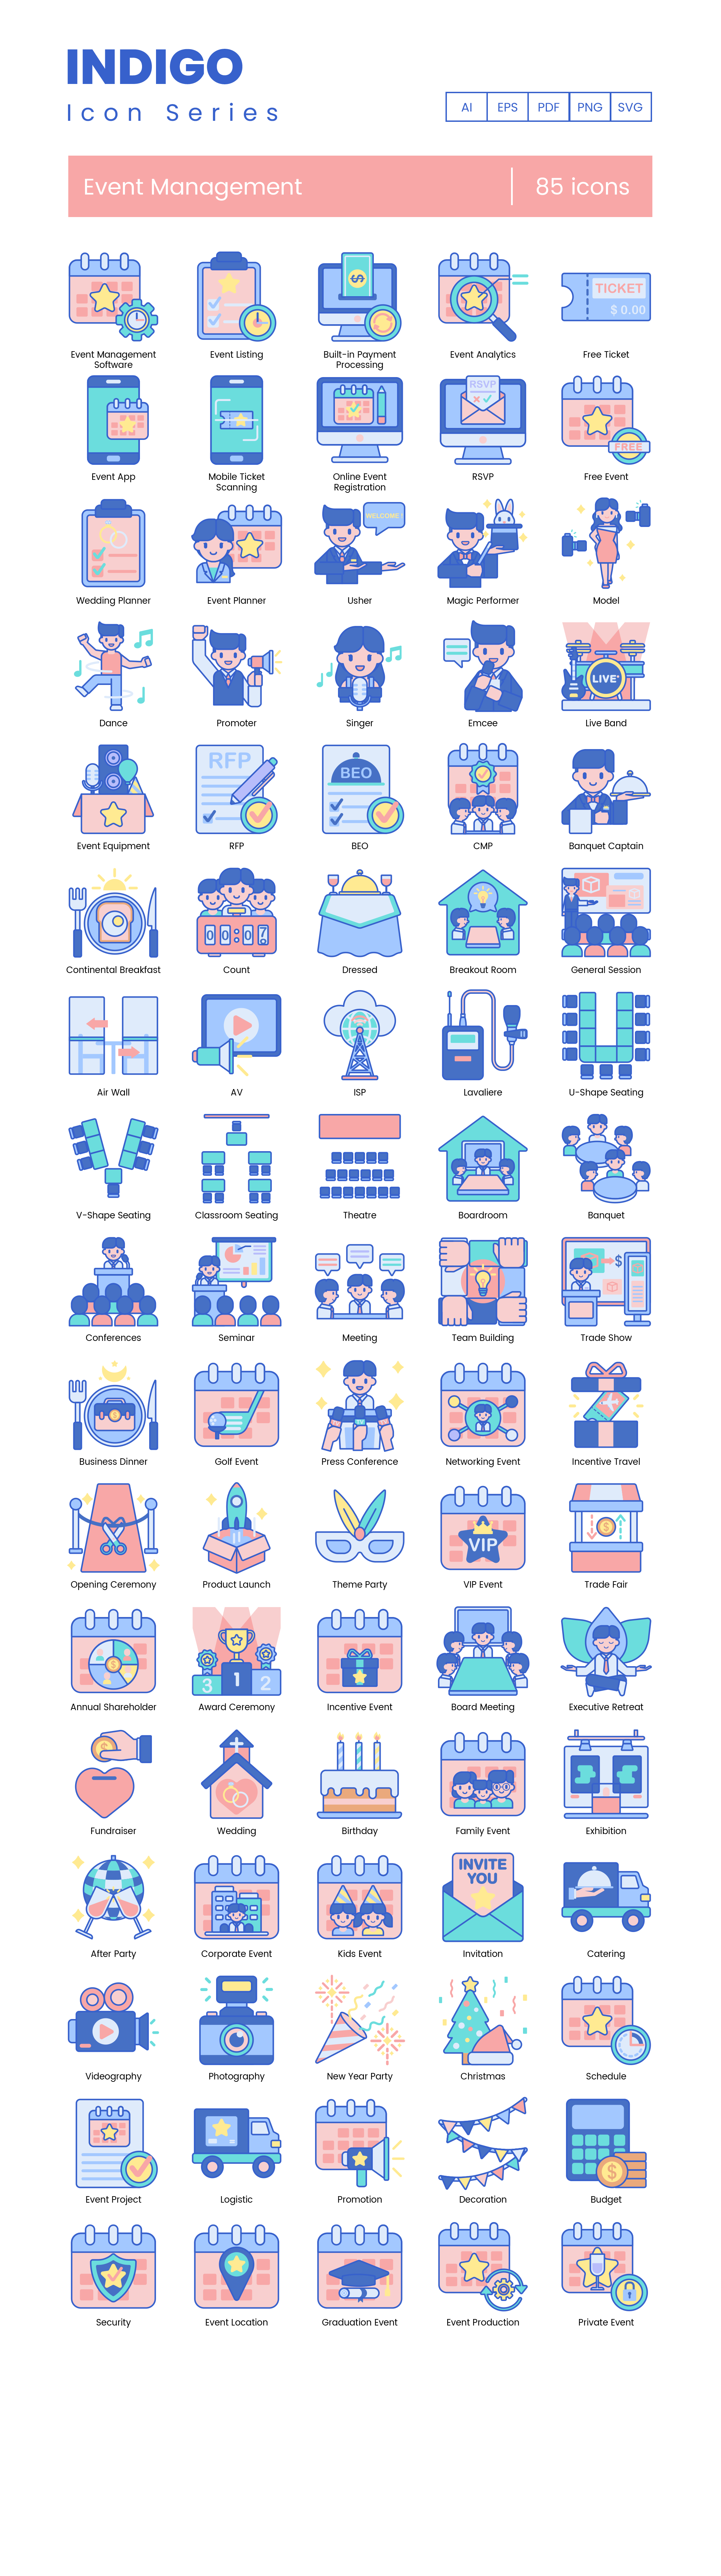 Preview Image for Event Management Icon Set